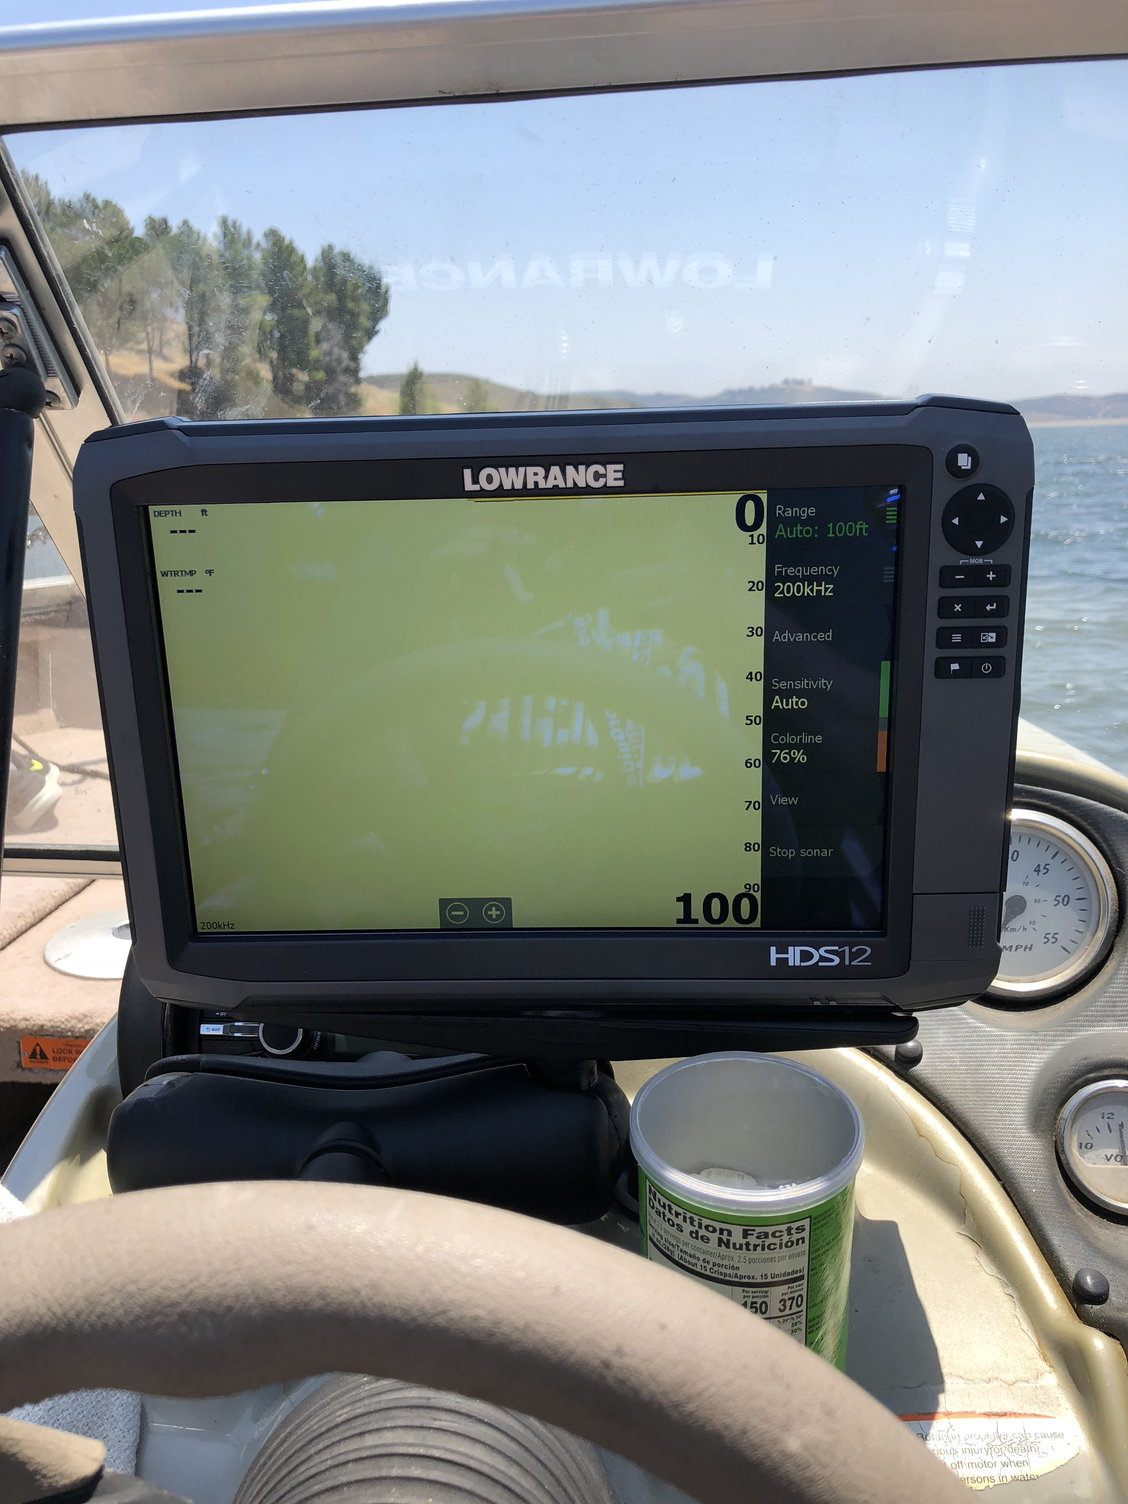 Lowrance HDS 12 gen 3 sonar ssues - The Hull Truth - Boating and